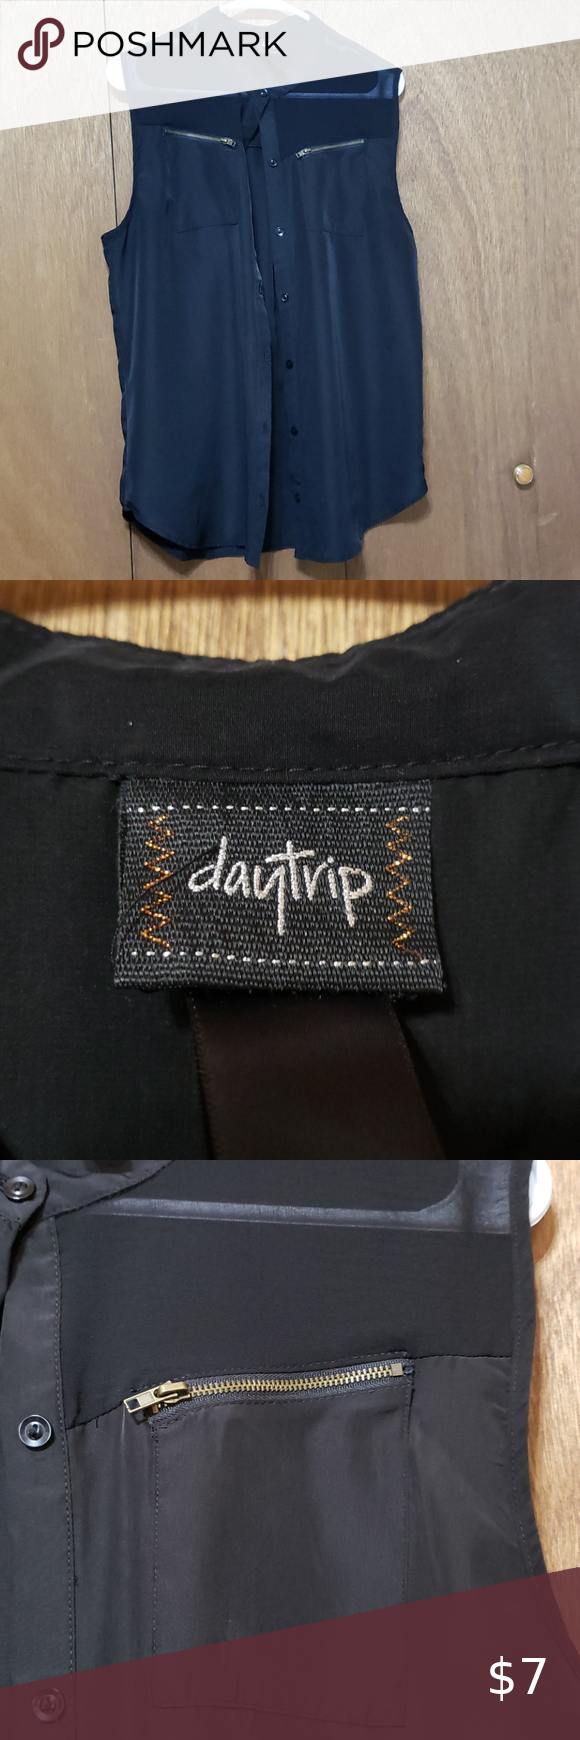 Daytrip Satin button blouse Black satin with mesh at front shoulders. Zippers do open to a pocket although not really sure why. There is a spot I noticed when taking pictures but hardly visible. If you look at the last picture under the pocket. Daytrip Tops Button Down Shirts